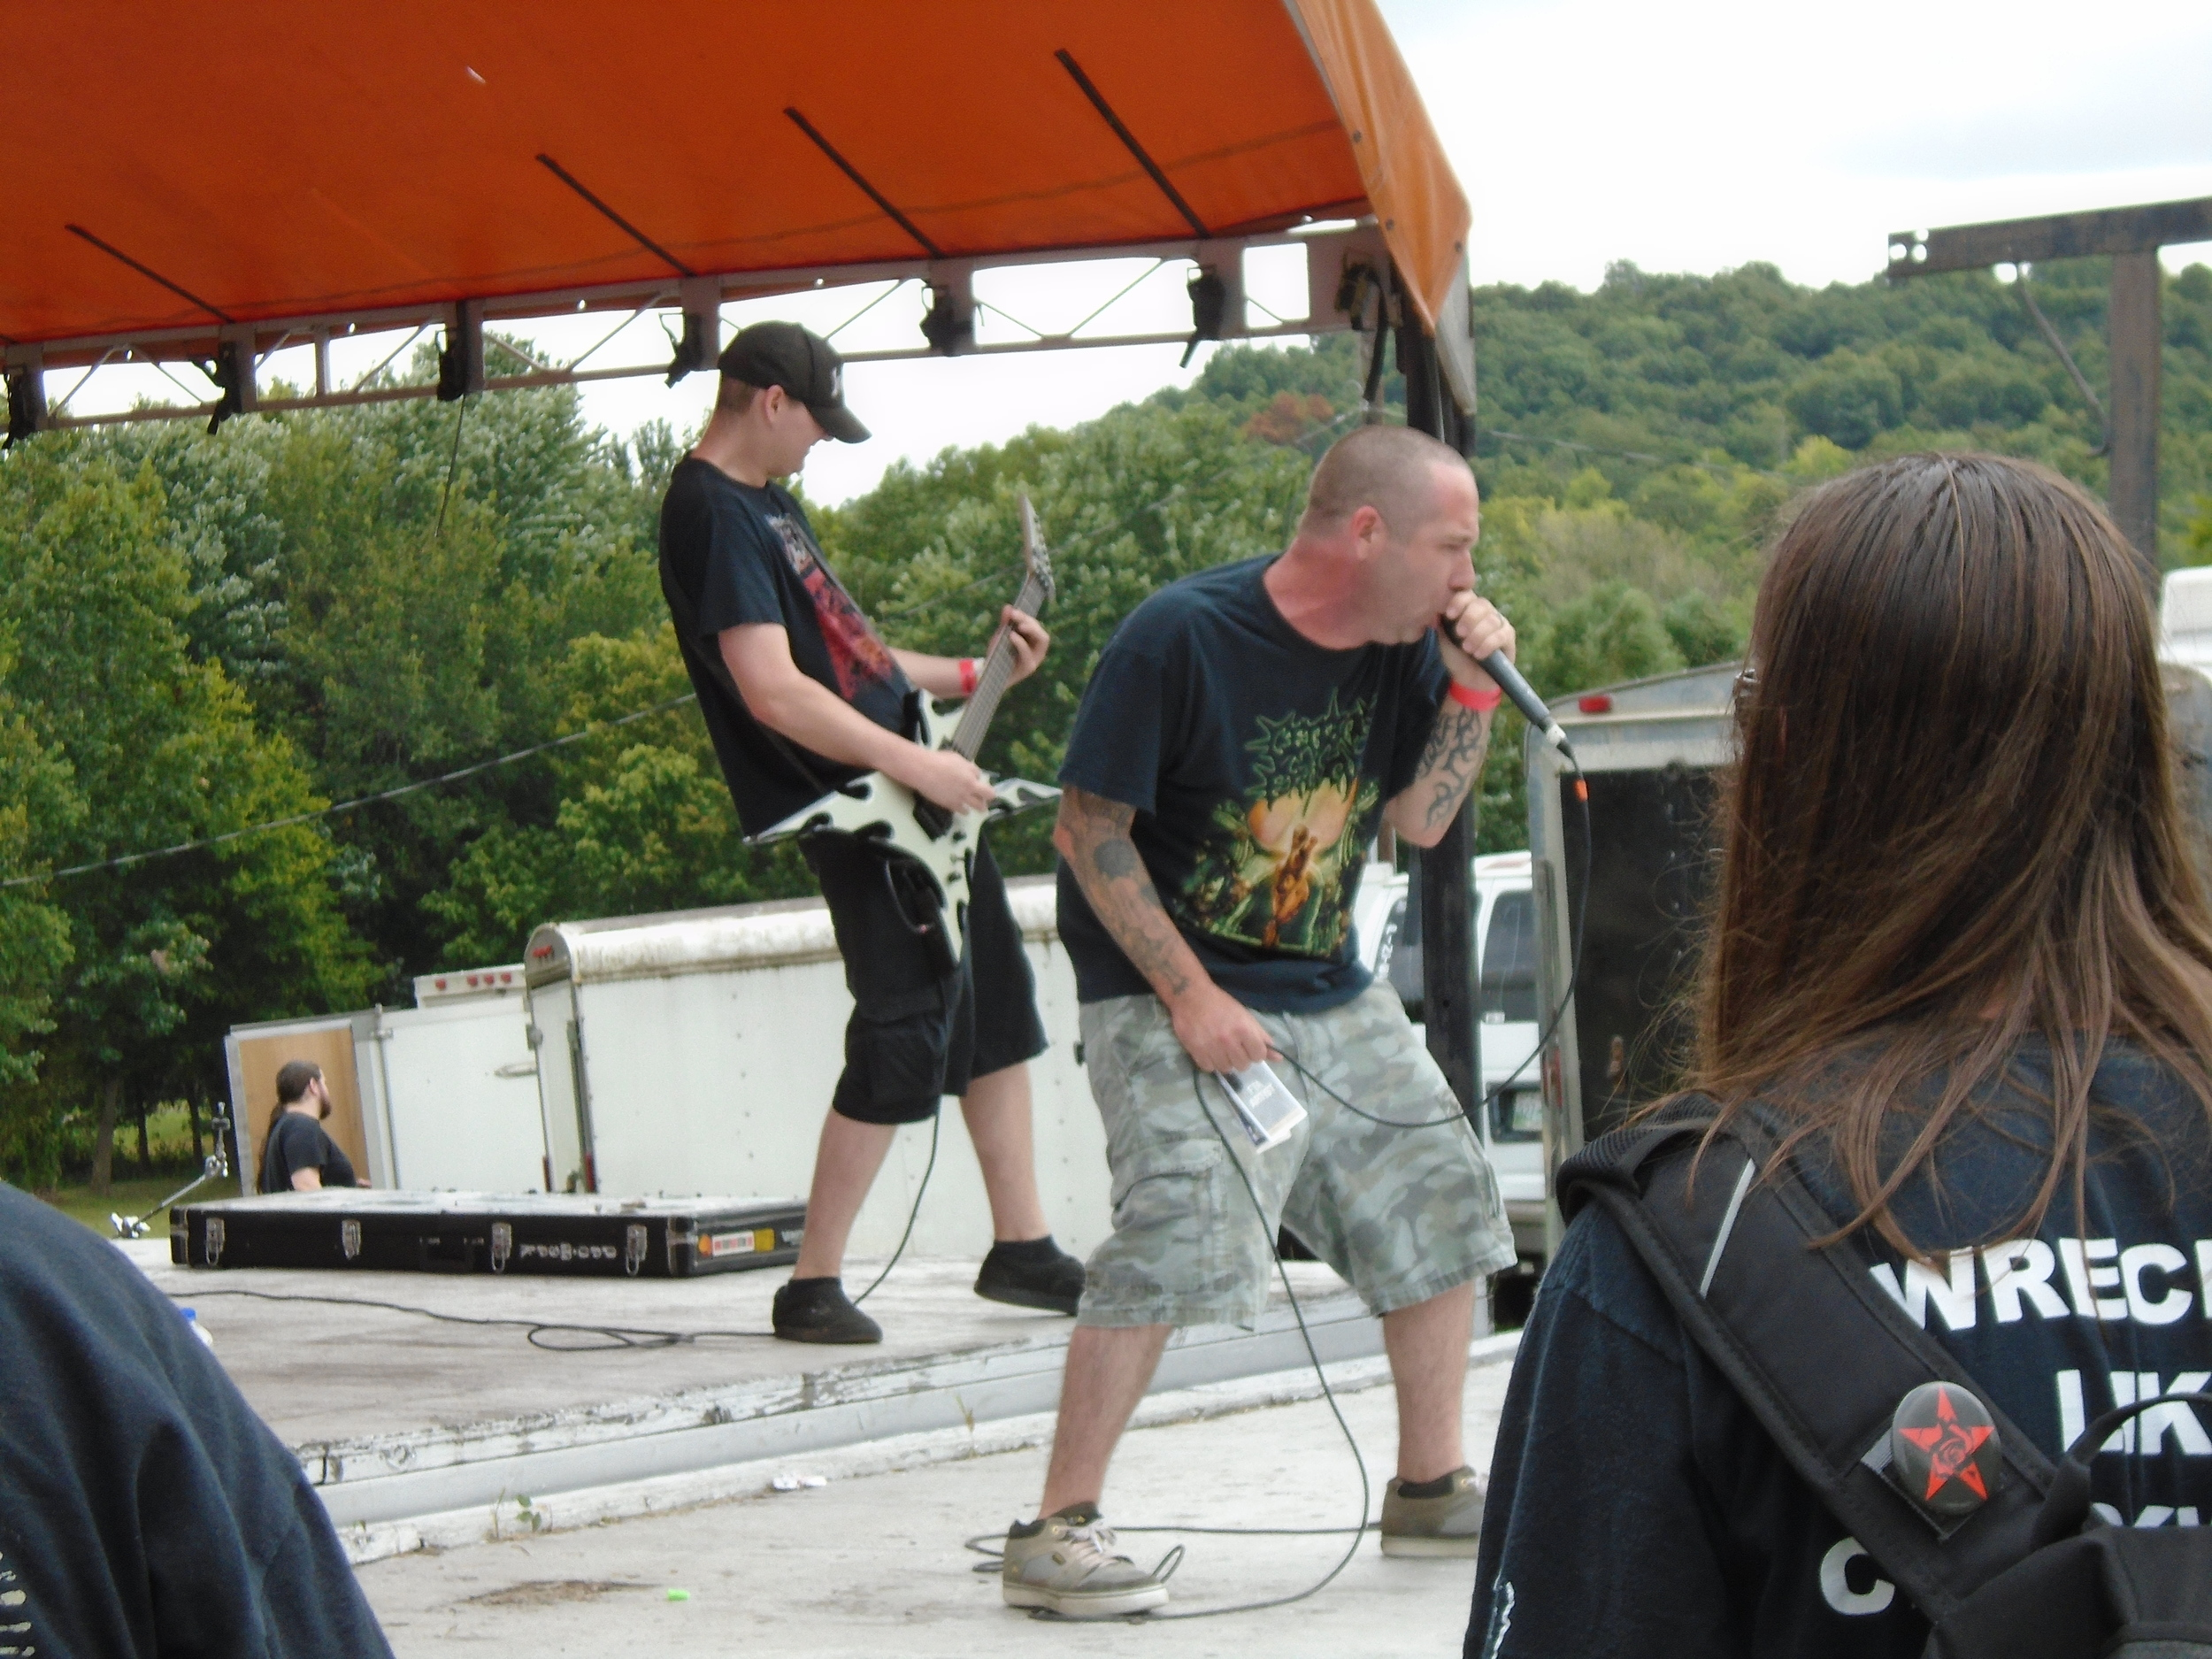 Coathanger Abortion During their set on the NRR stage @ Full Terror Assault